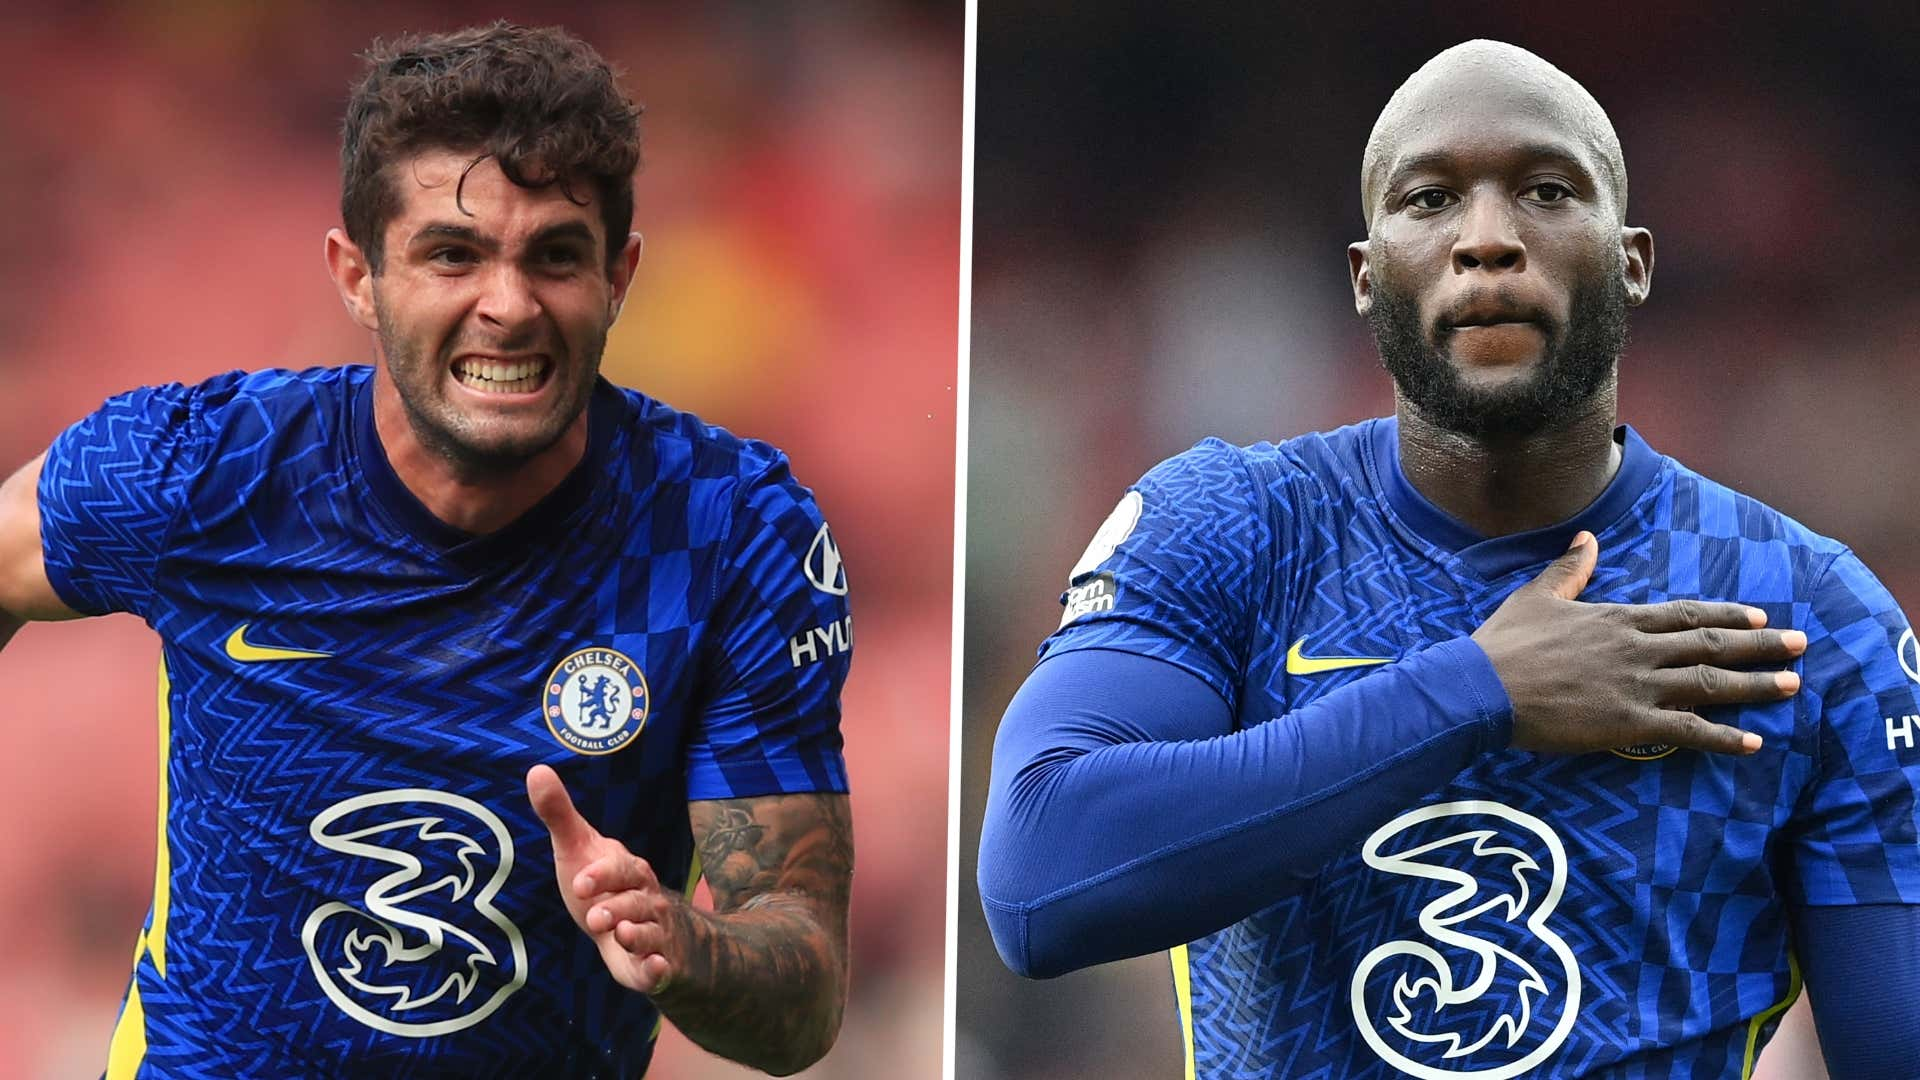 Pulisic and Lukaku in mixed injury news for Chelsea as Tuchel gives updates on USMNT and Belgium stars